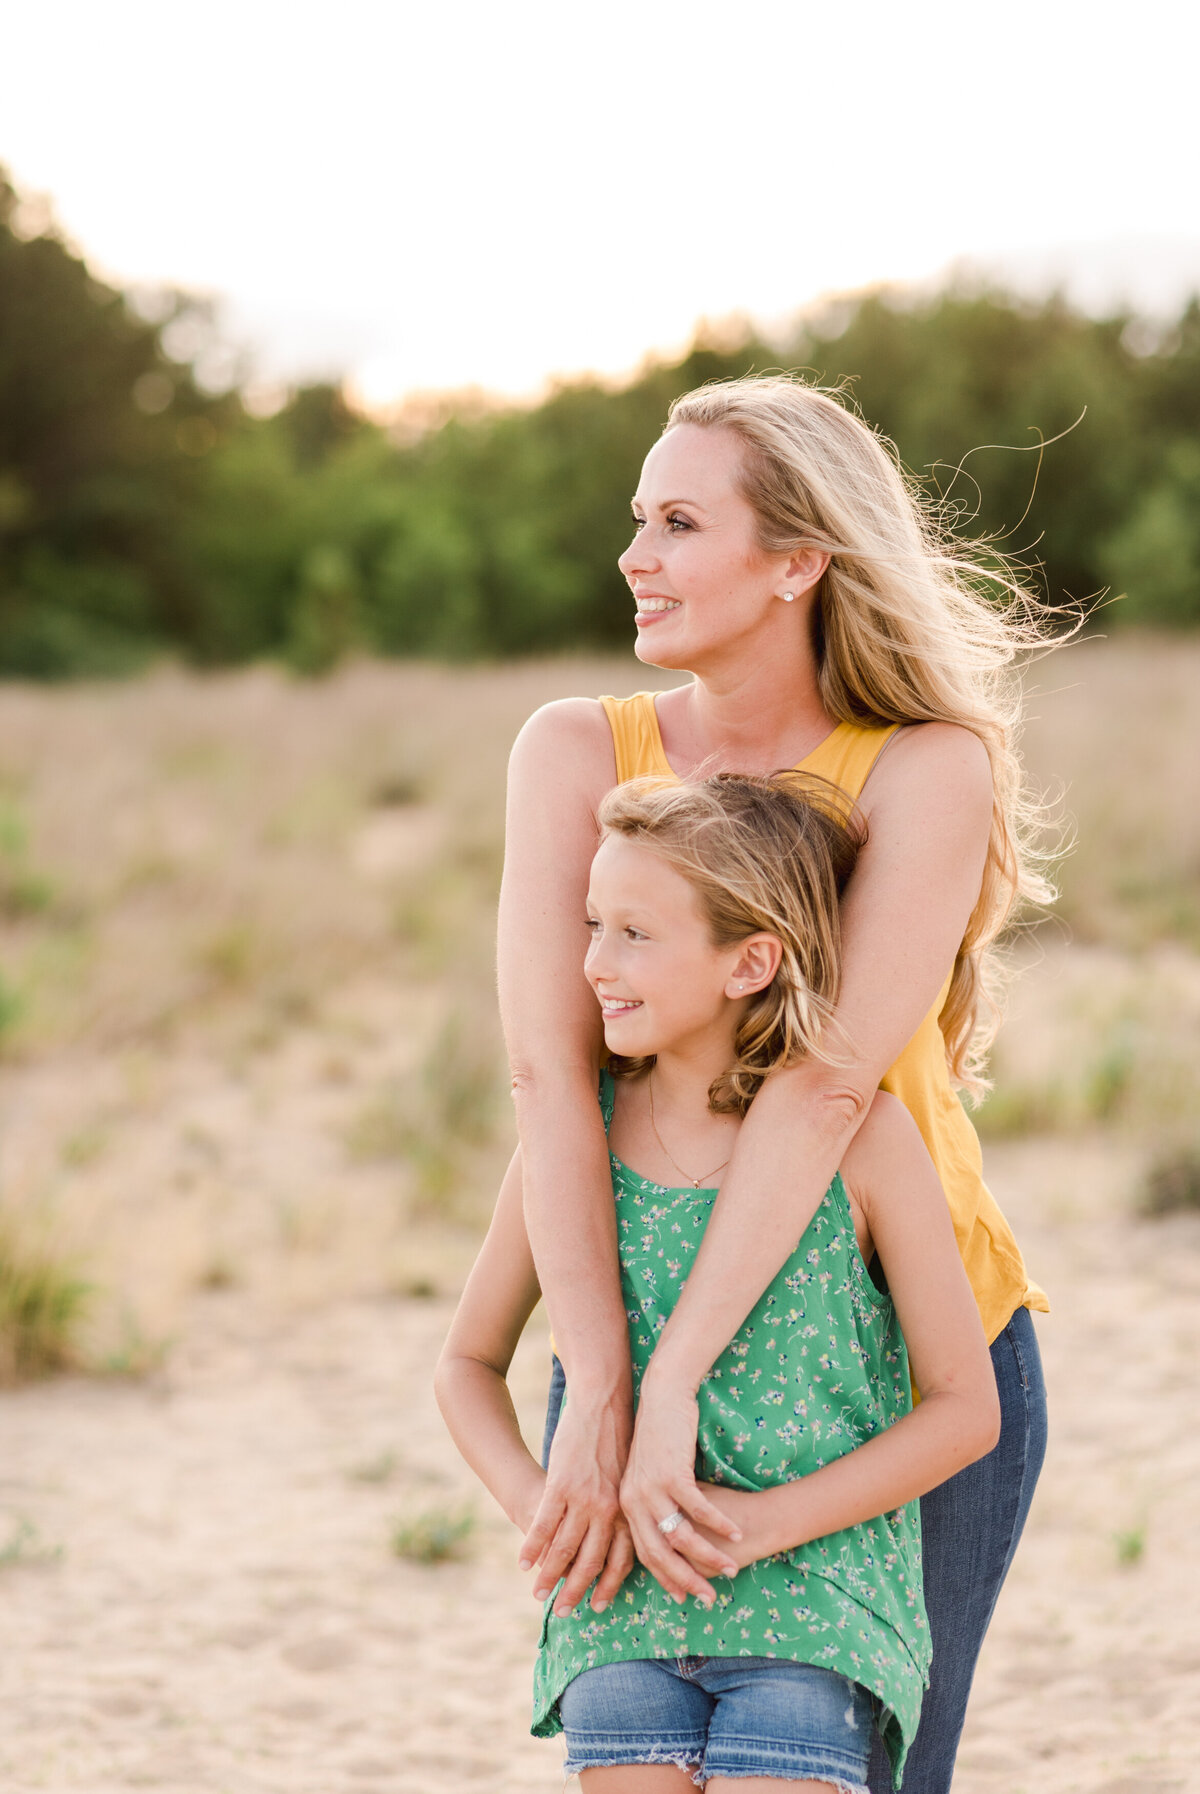 family-photographer-virginia-beach-tonya-volk-photography-35